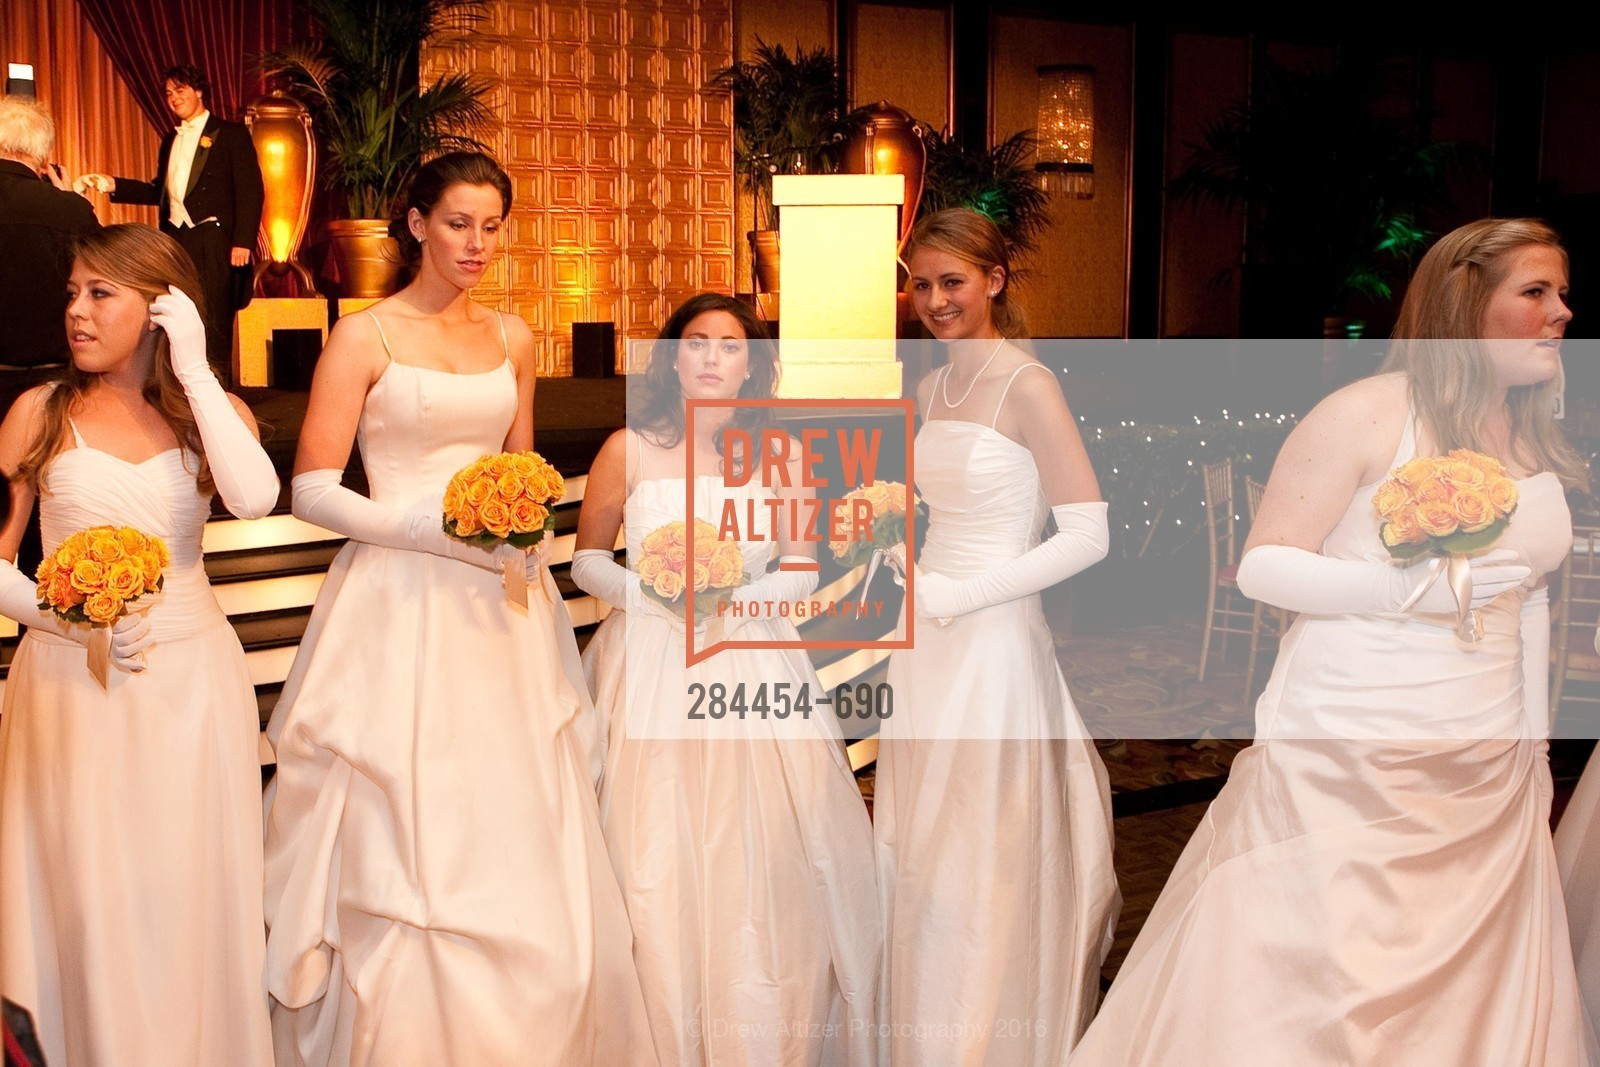 Taylor Roy, Victoria Student, Meaghan Crowley, Greer Rosenbaum, Abigail Brannan Mathieson, 2009 Debutante Ball, Unknown, July 4th, 2008,Drew Altizer, Drew Altizer Photography, full-service agency, private events, San Francisco photographer, photographer california